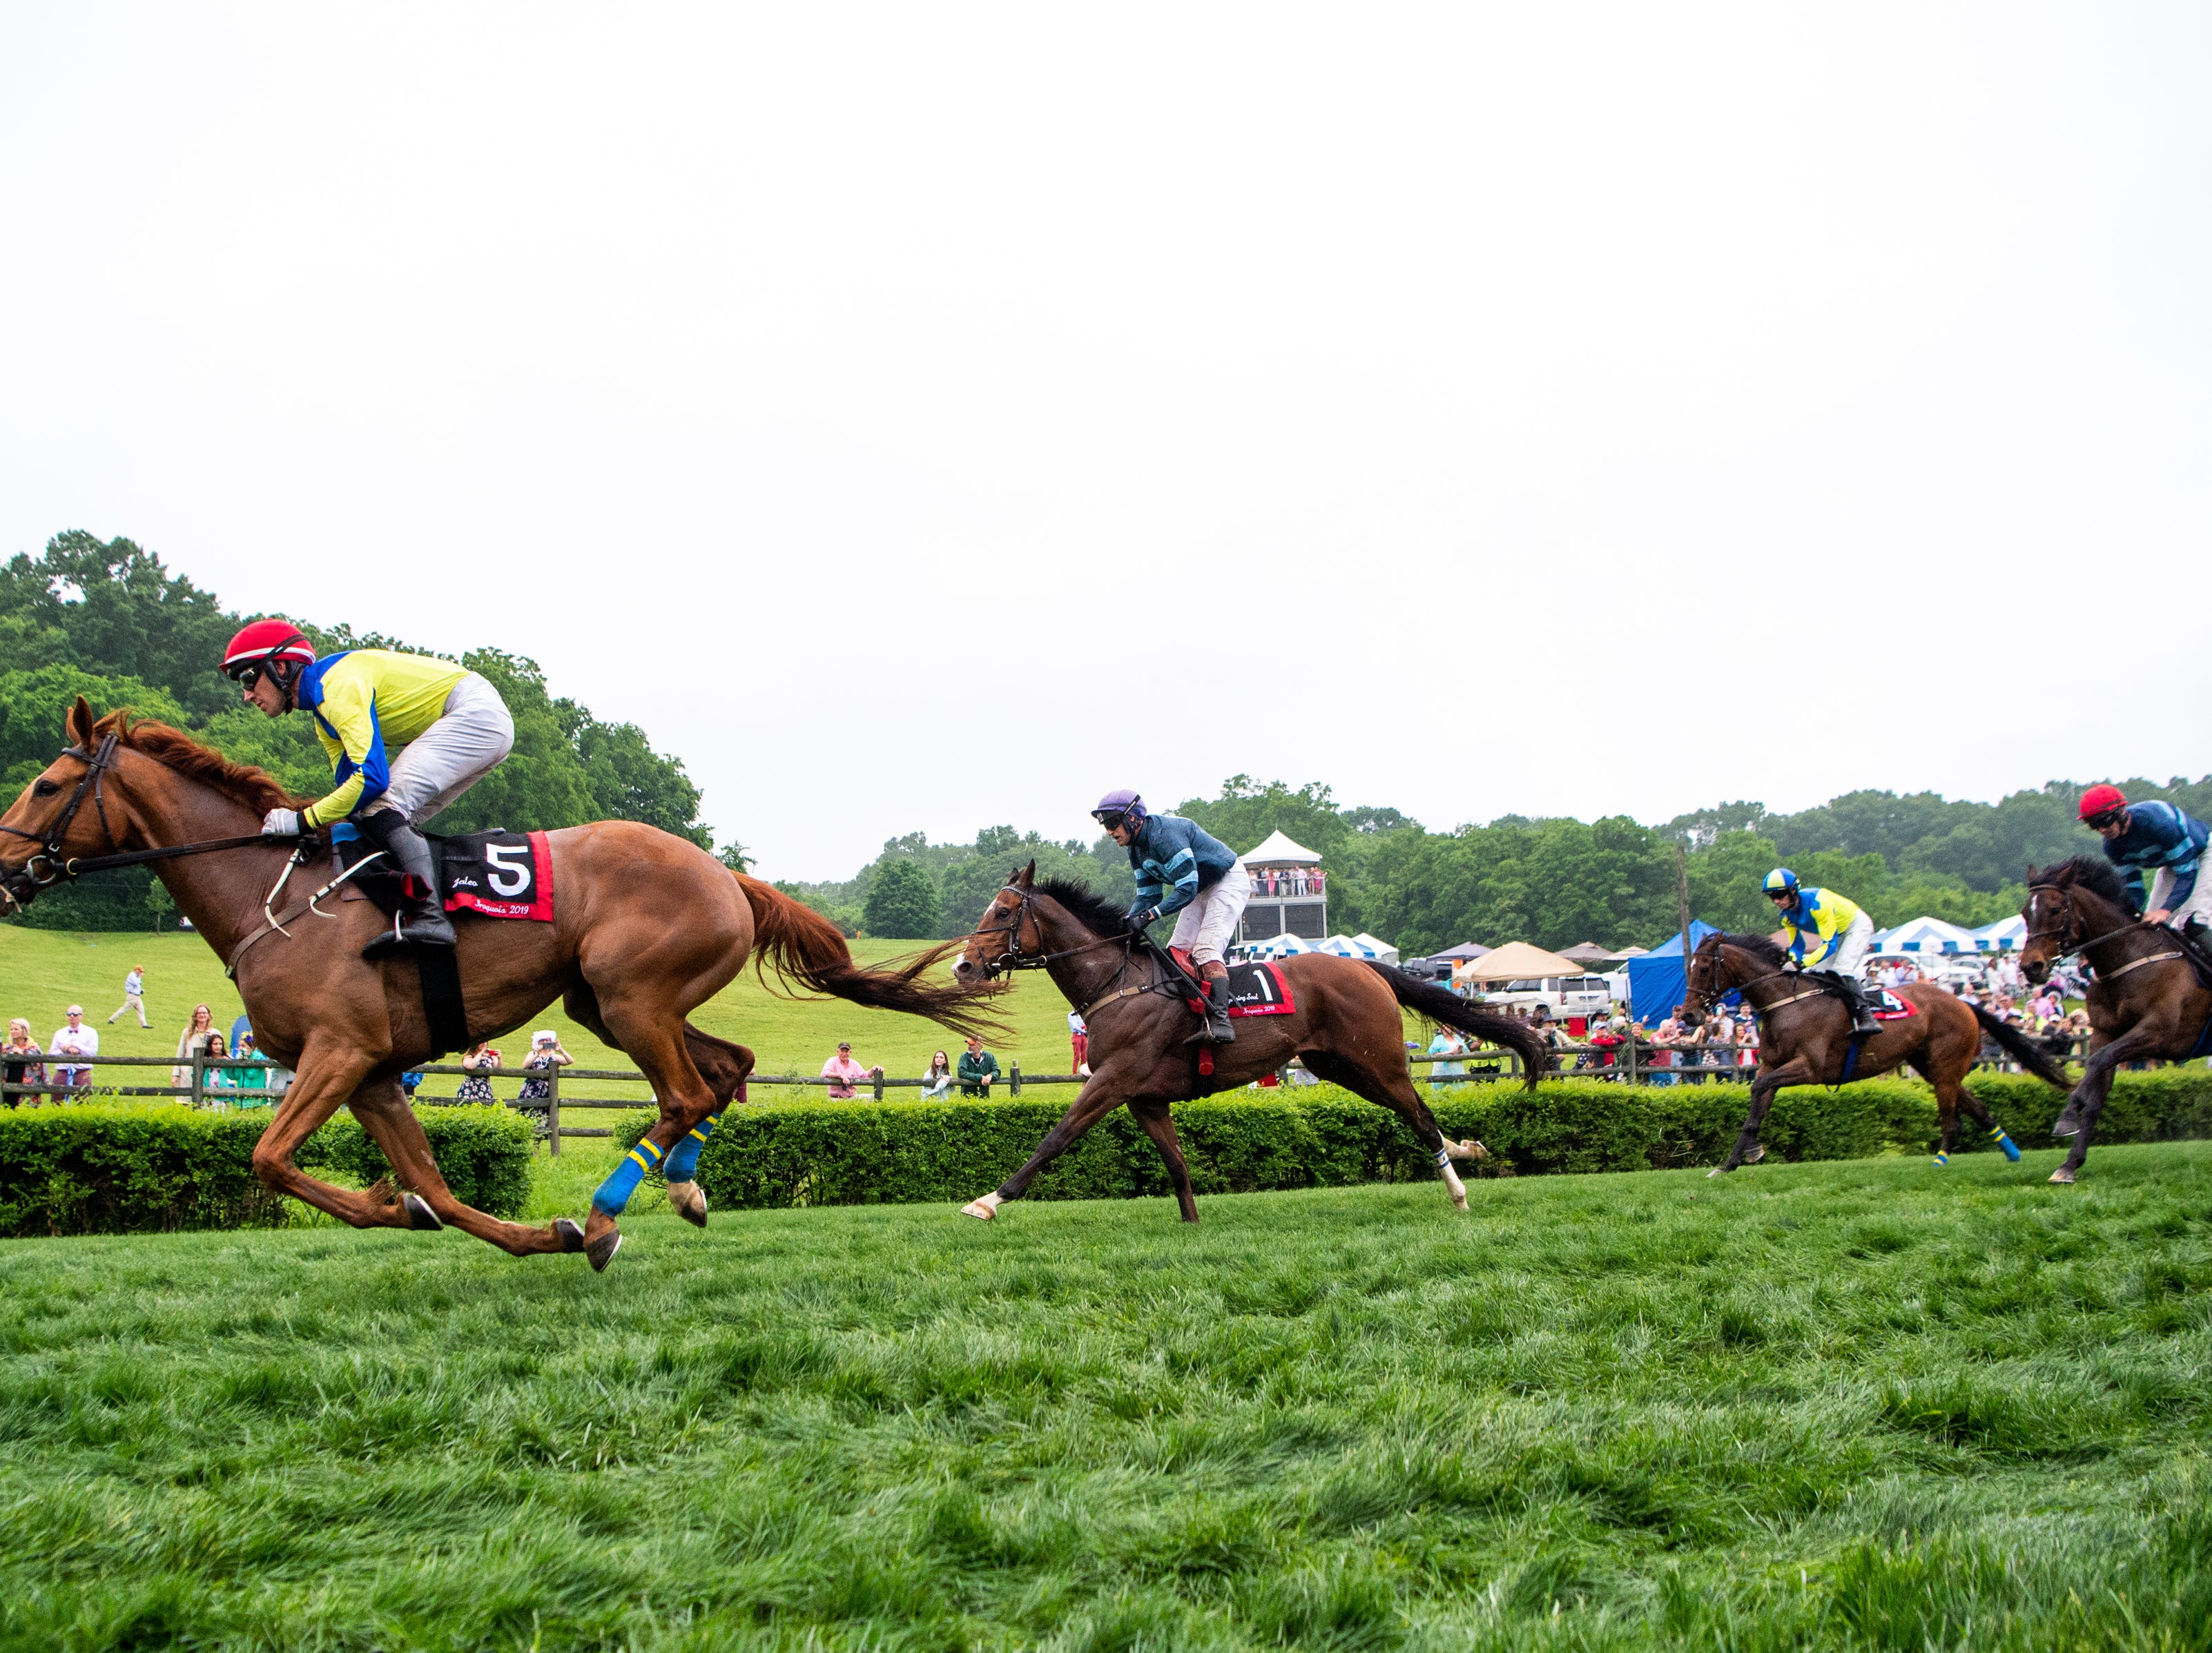 Willie McCarthy and Jaleo, left, speed down the track during the final race of the Iroquois Steeplechase at Percy Warner Park Saturday, May 11, 2019, in Nashville, Tenn.